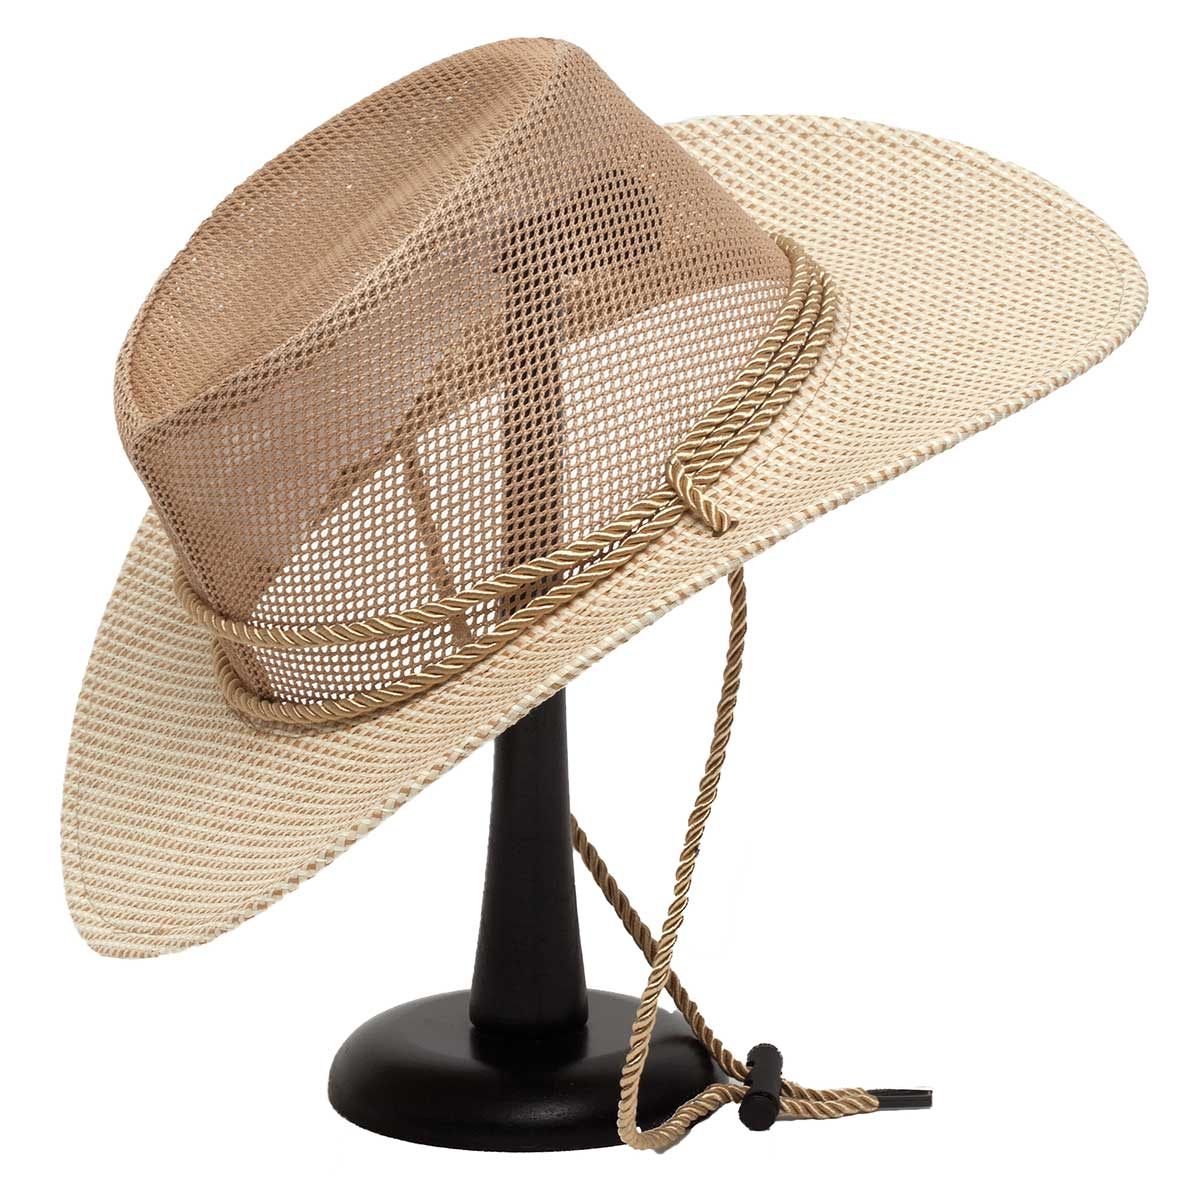 Cream Mesh Hat with Rope Trim and Checkered Brim 50sp